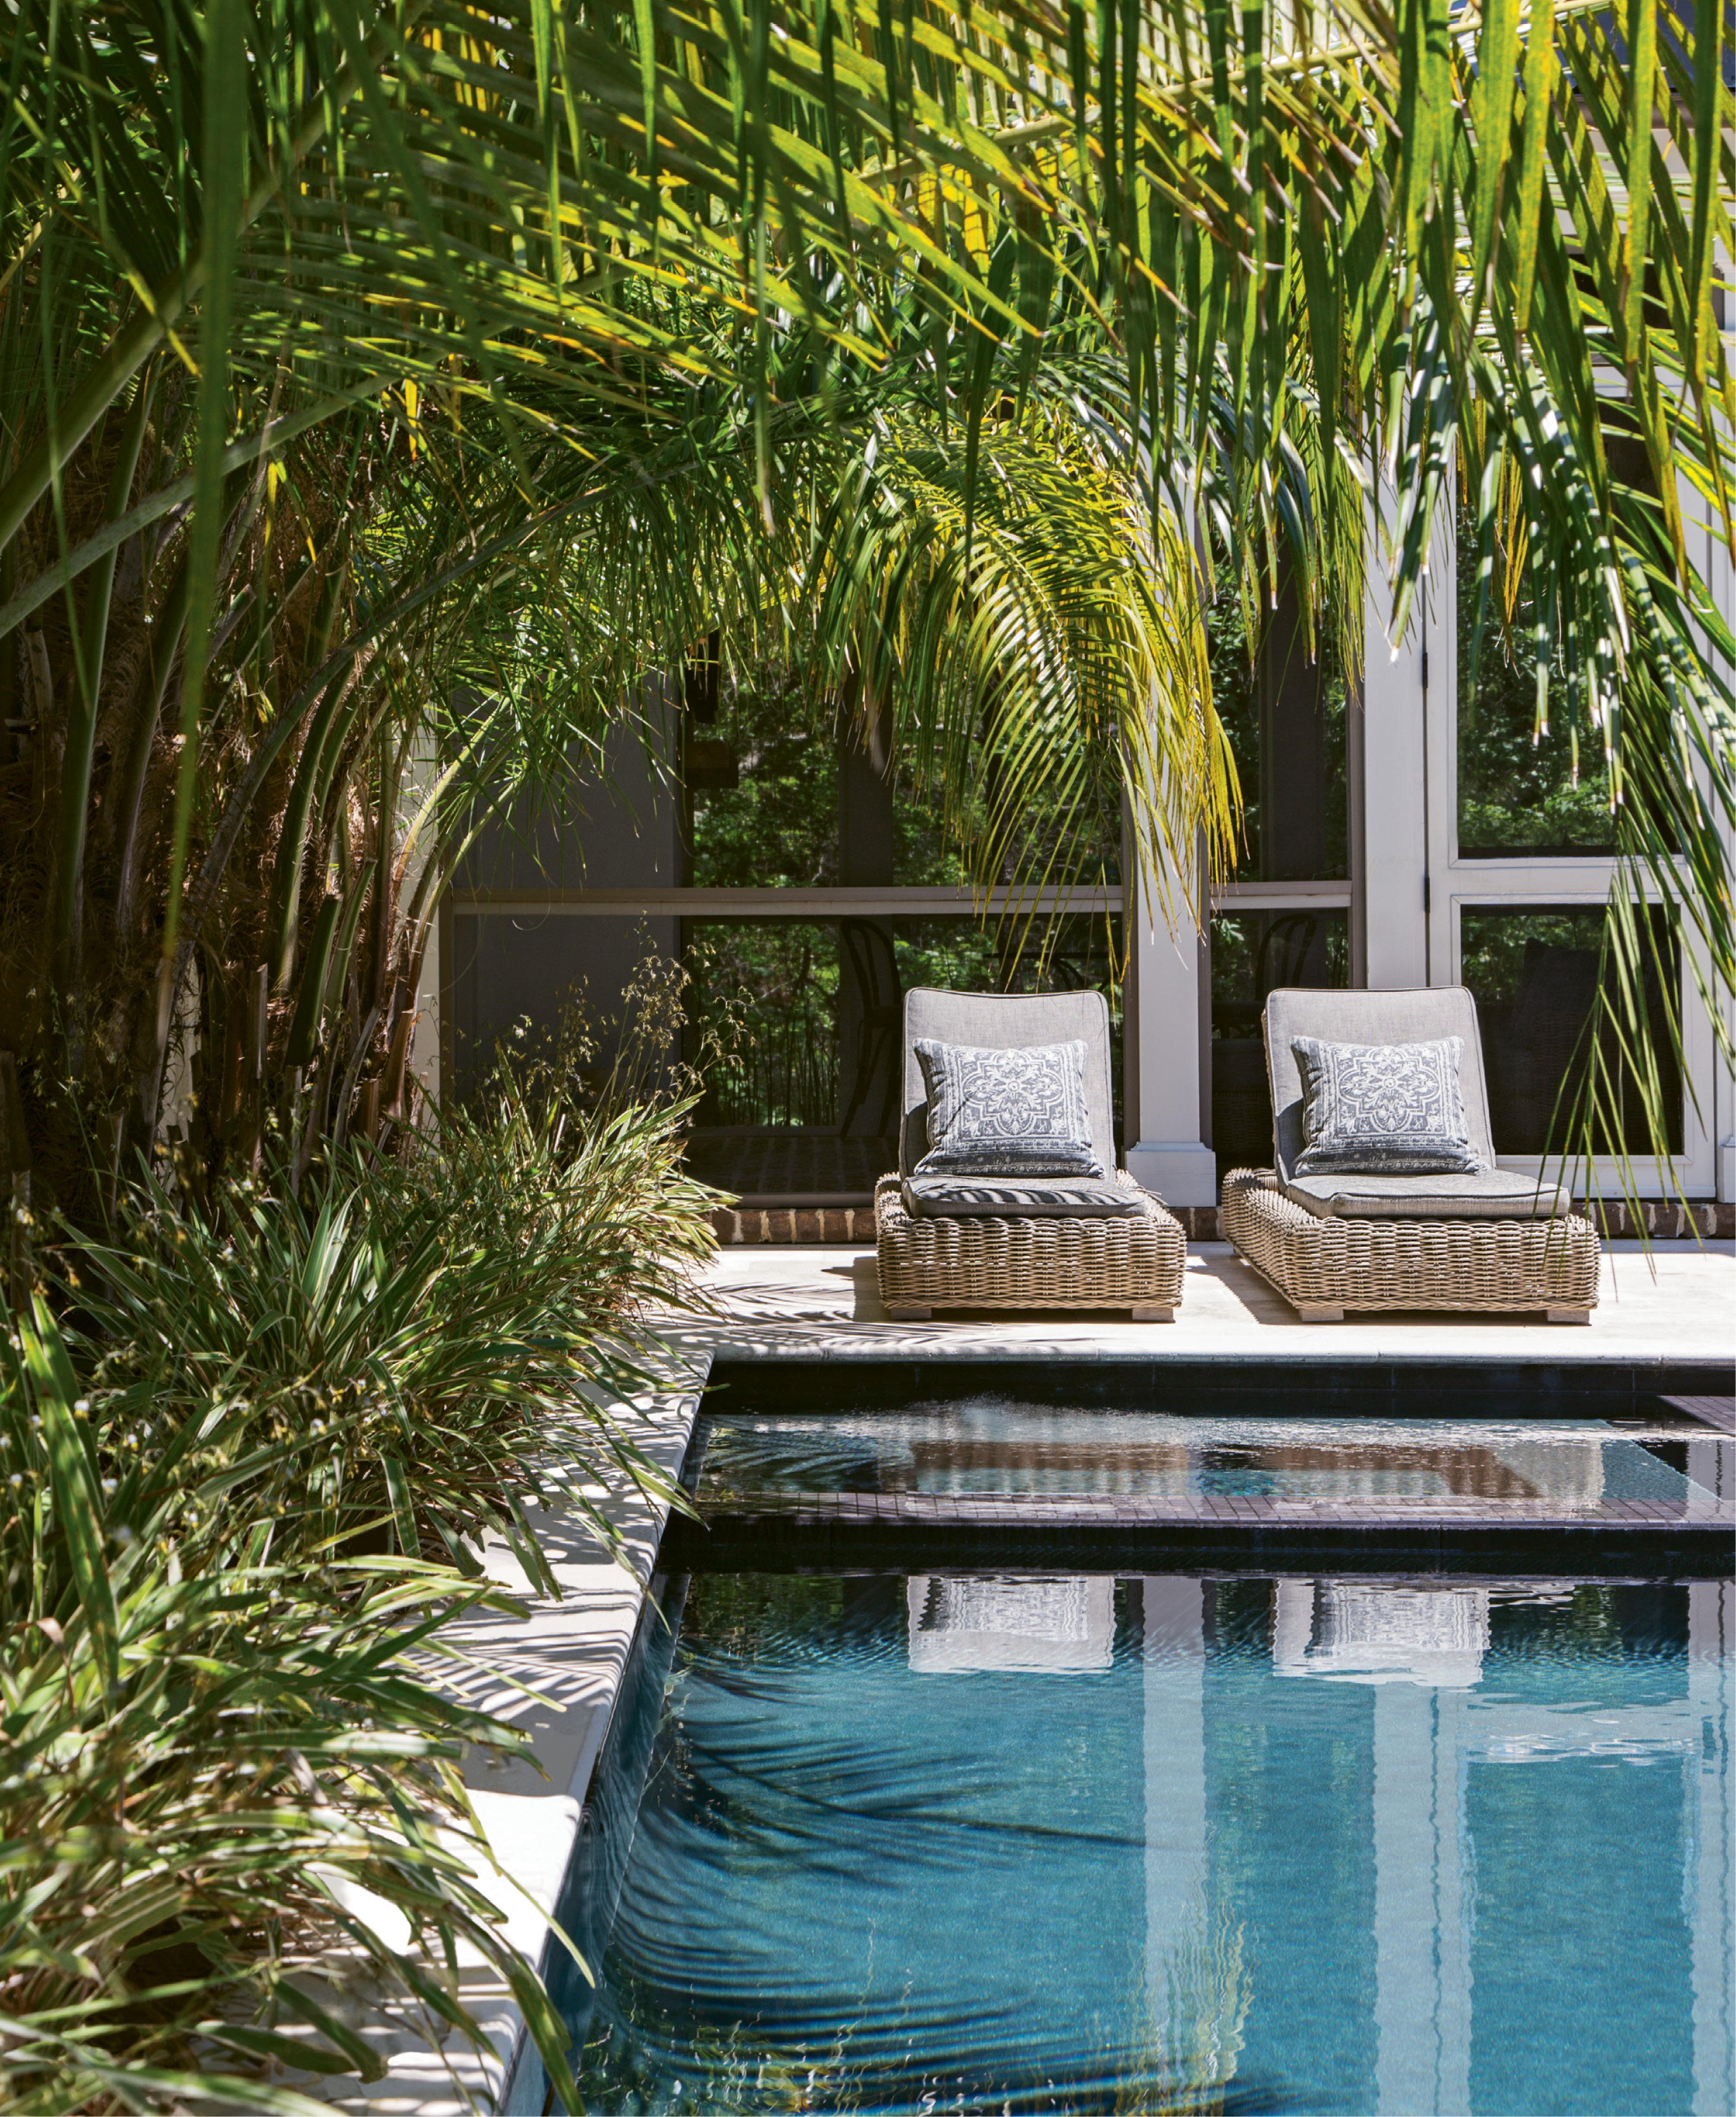 Reflective Pool: Though not initially in the plans, the Cuocos' addition of a pool—a spot for relaxation, family fun, and outdoor entertaining—reflects their lifestyle and their wish that home be a place of refreshing serenity.